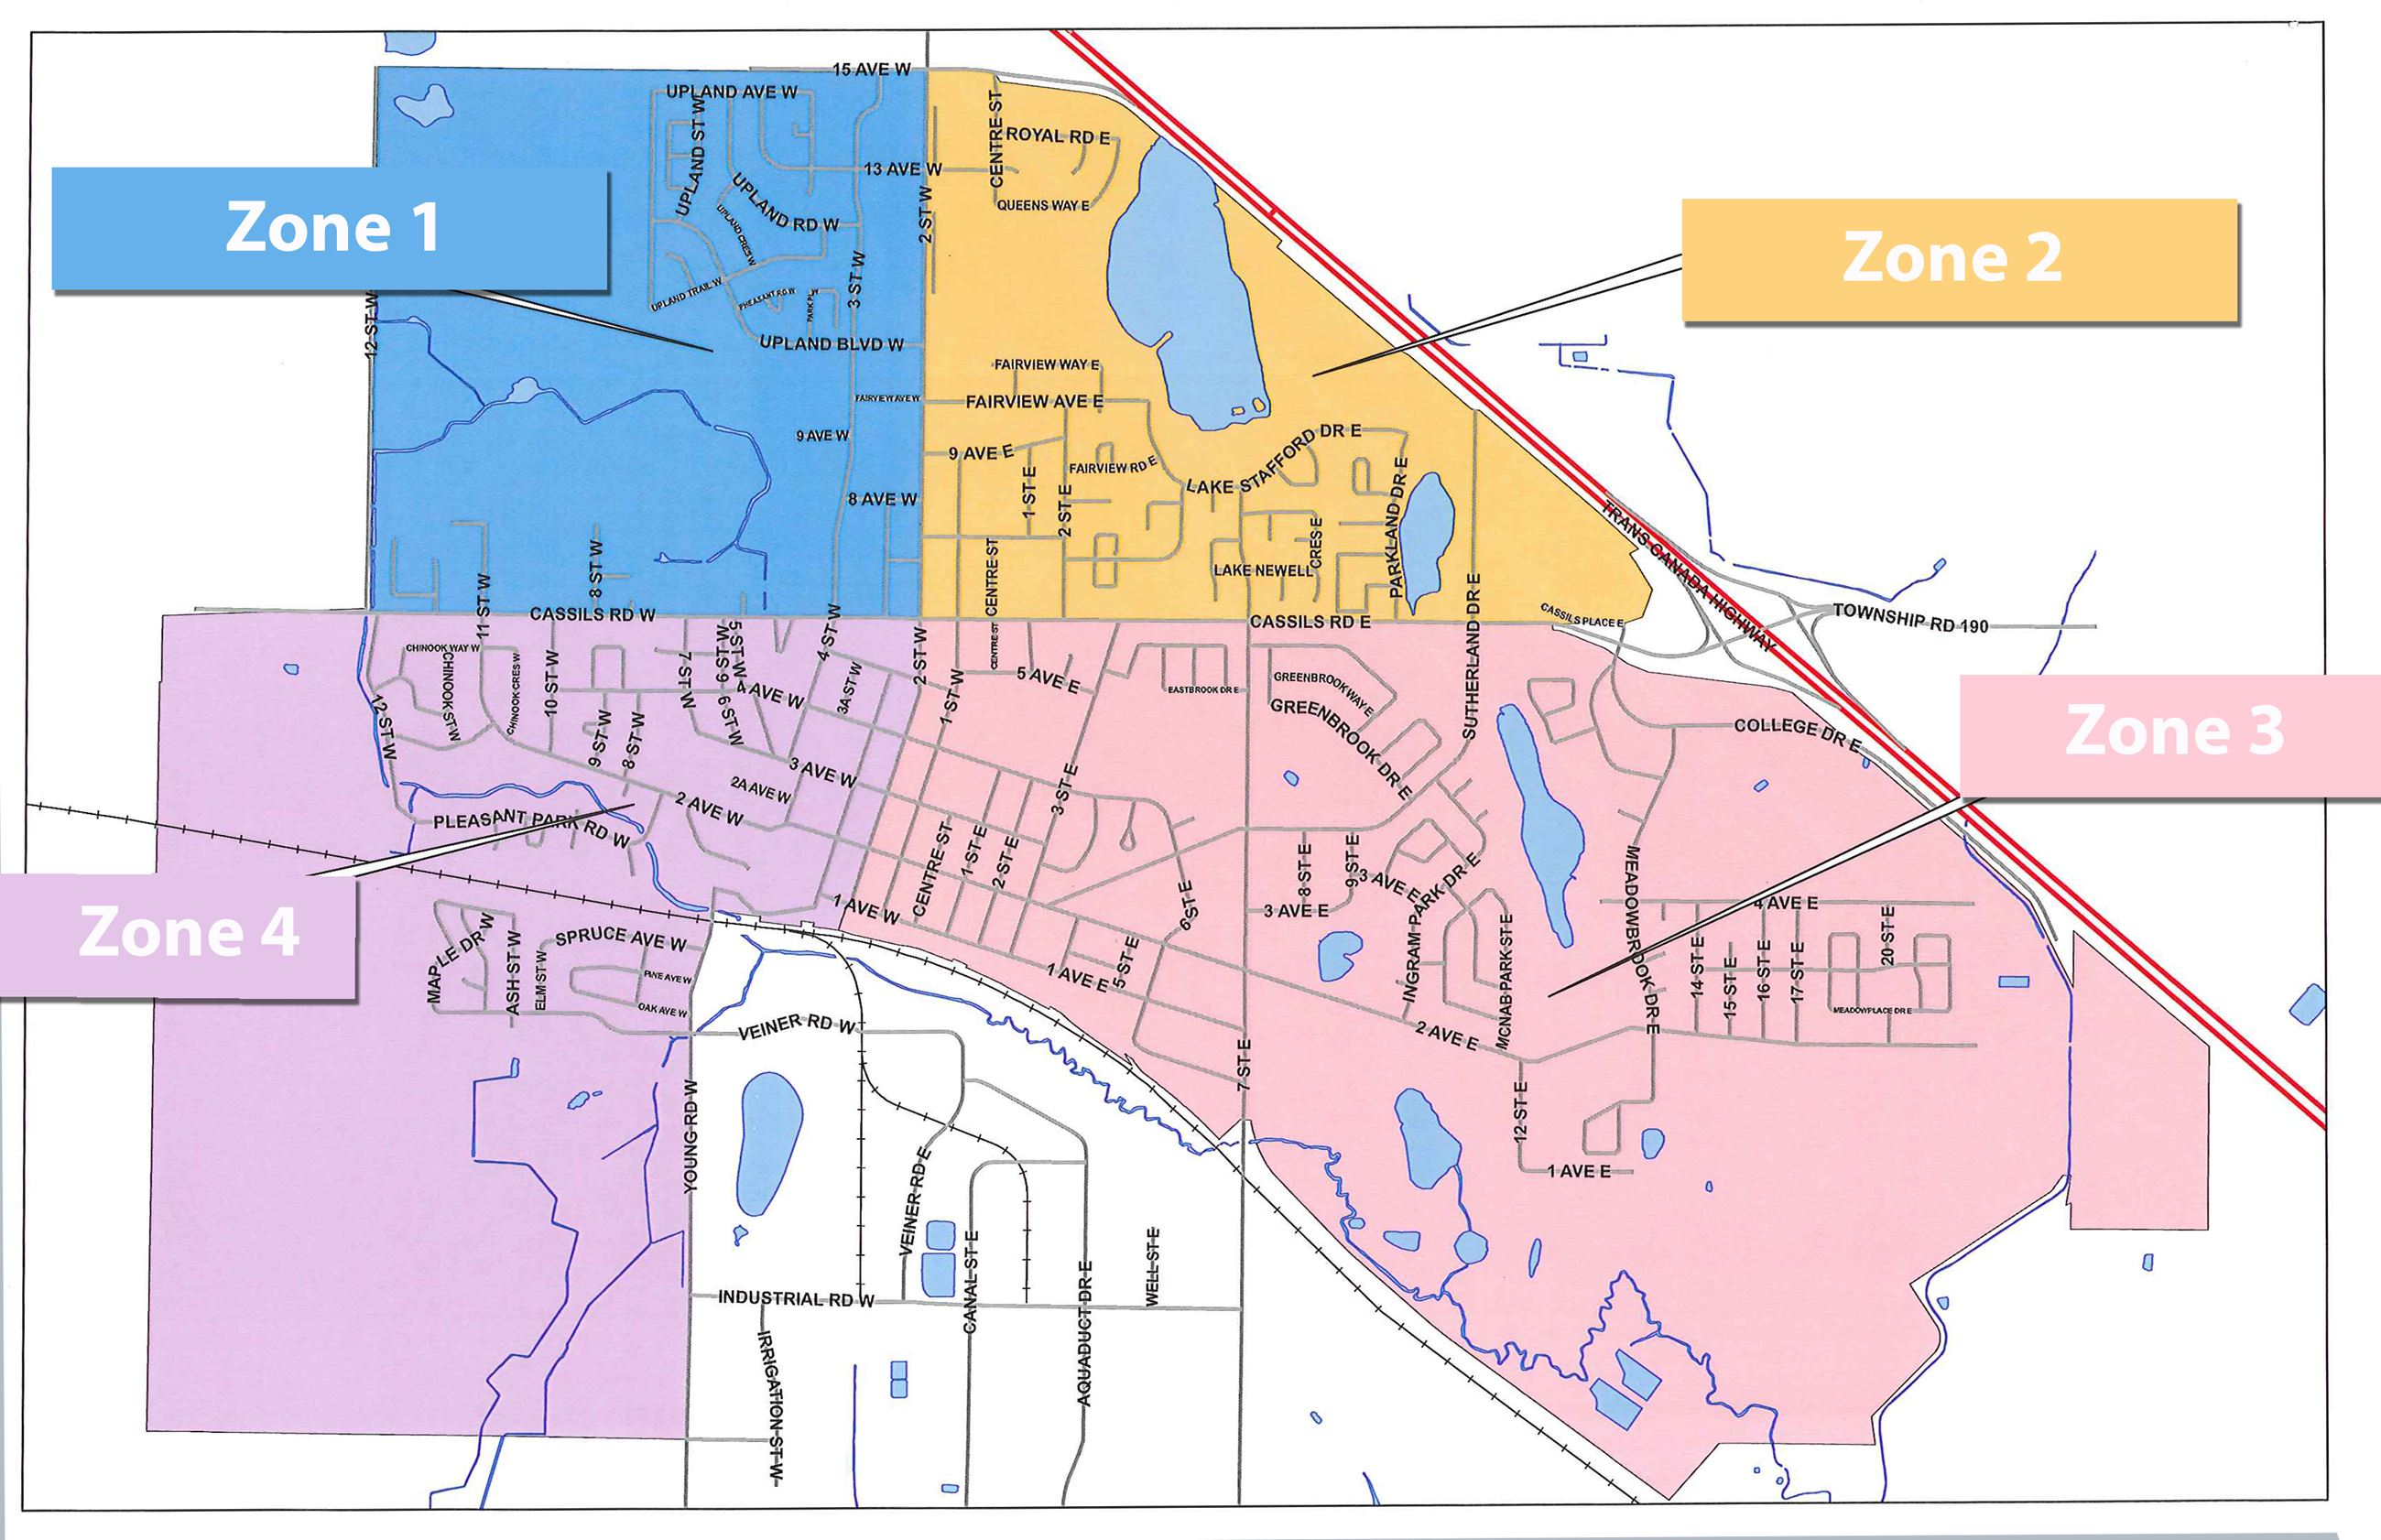 Street Sweeping zone map